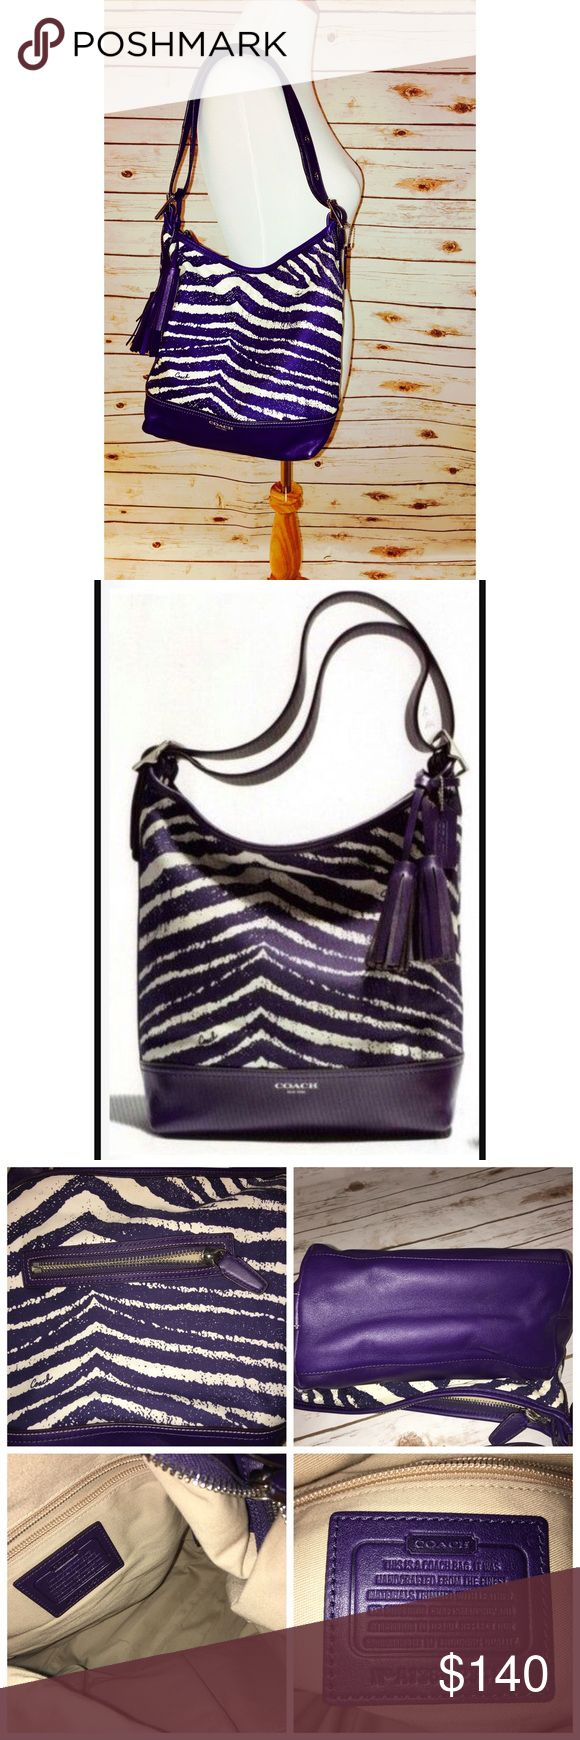 "Coach Legacy Zebra Print Zebra Duffle Purple/White Fantastic Condition Coach Legacy Zebra Print Zip Duffle Bag in Marine Purple and White! This bag is outstanding and has tons of room plus pockets...13"" W x 11.5"" H x 5"" D Strap Drop 8"" Doubled, 18"" Single Cross Body Coach Other"